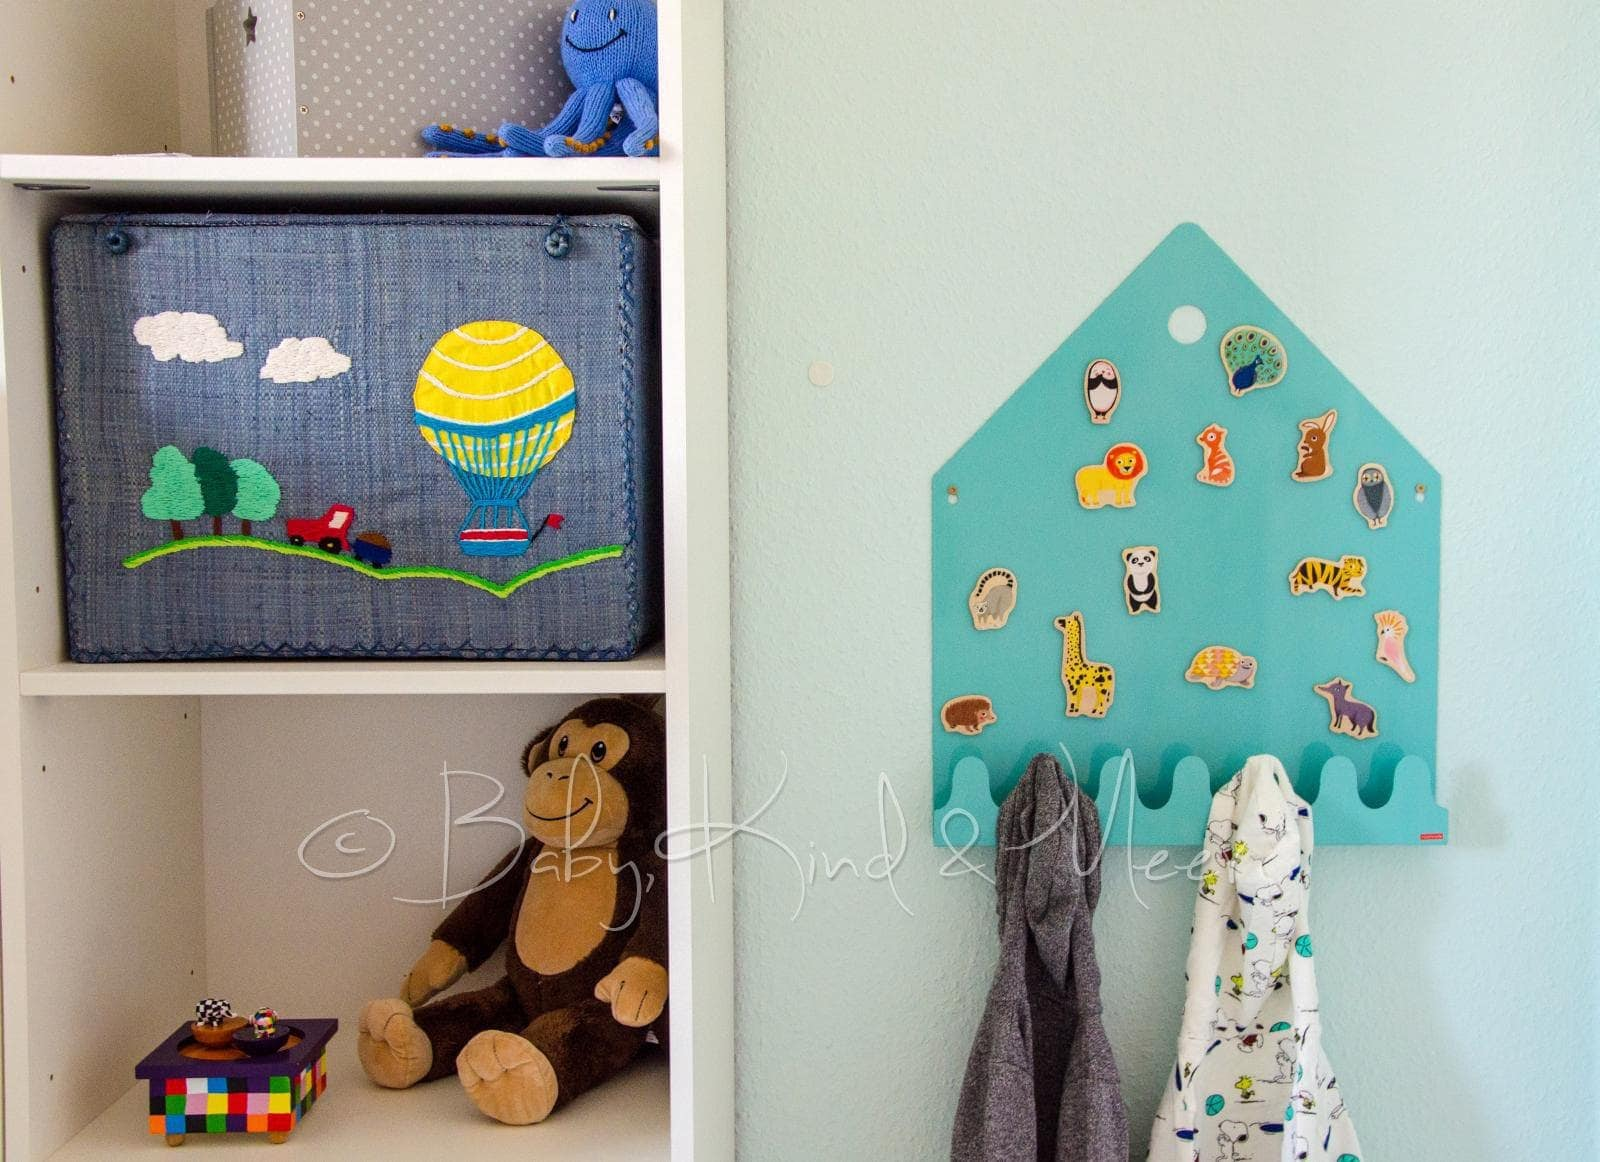 TOMS KINDERZIMMER - ROOMTOUR - Family & Living, Interior - Baby ...